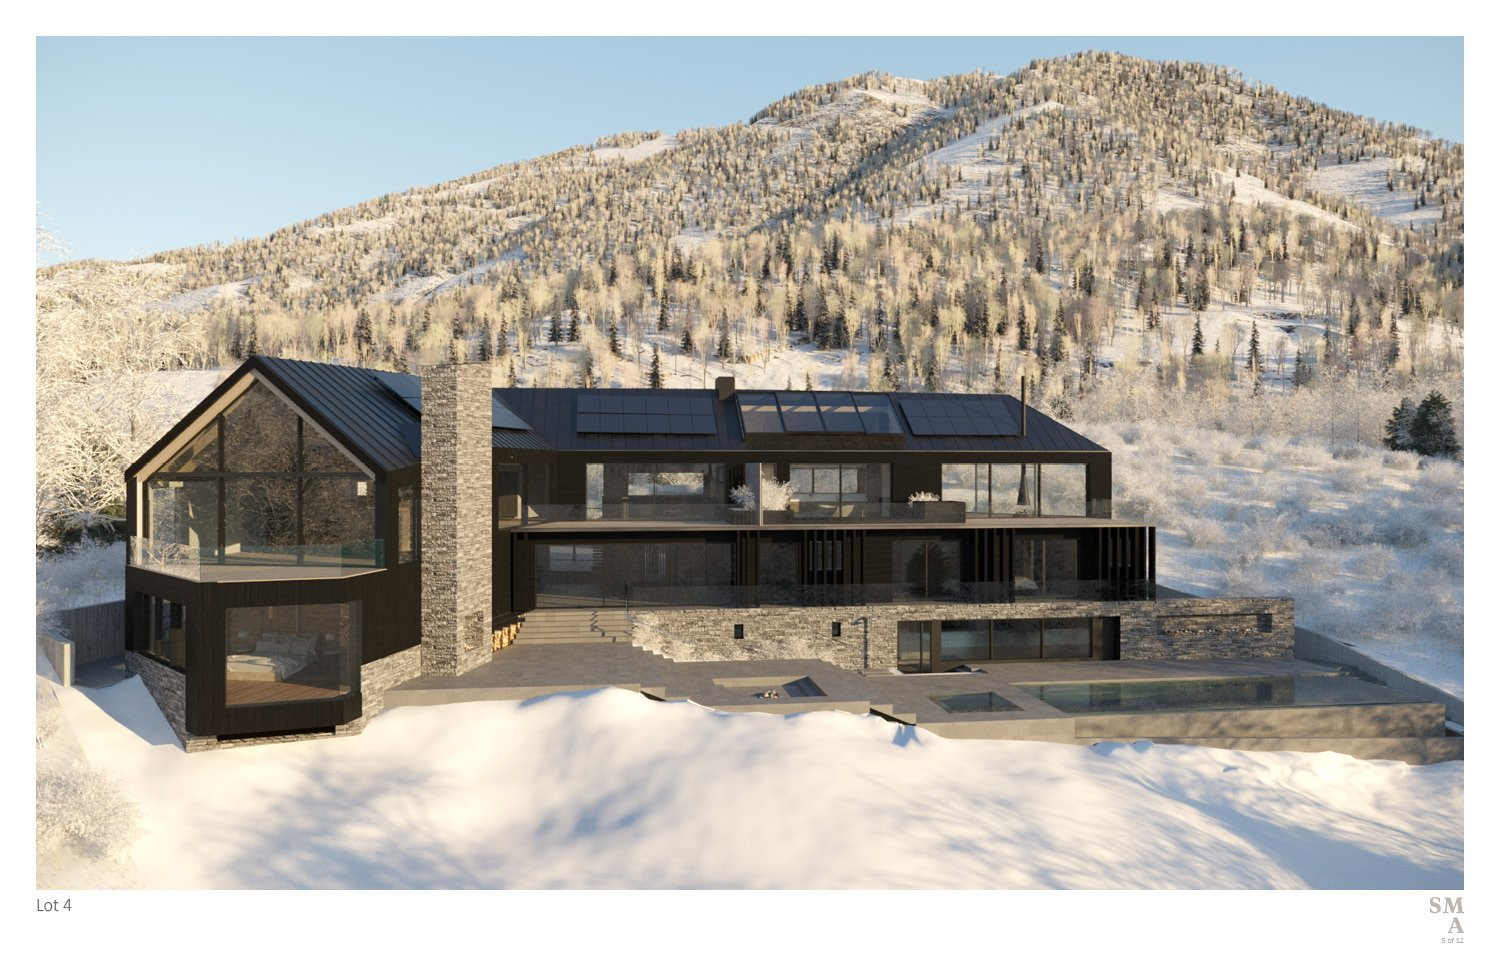 Lot 4 - South elevation of the sheared and chamfered volumes. SMA Design Team & Consultants